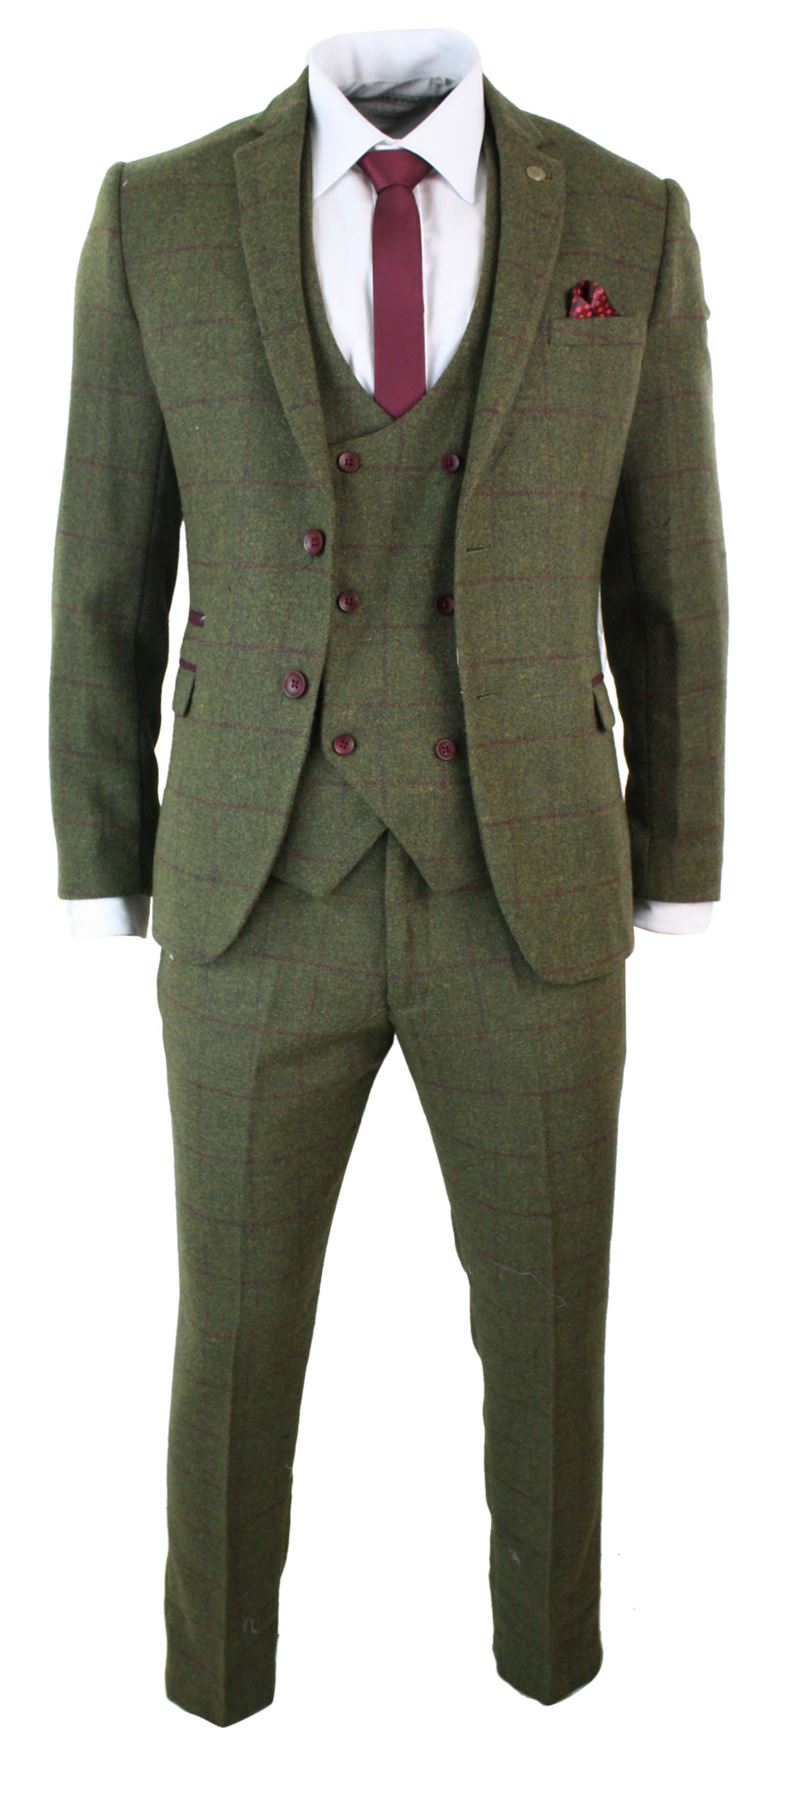 Suits also come with different numbers of pieces: a two-piece suit has a jacket and the trousers; a three-piece adds a waistcoat (known as a vest in North America); A wide range of colour is available, including muted shades of green, brown, red, and grey.